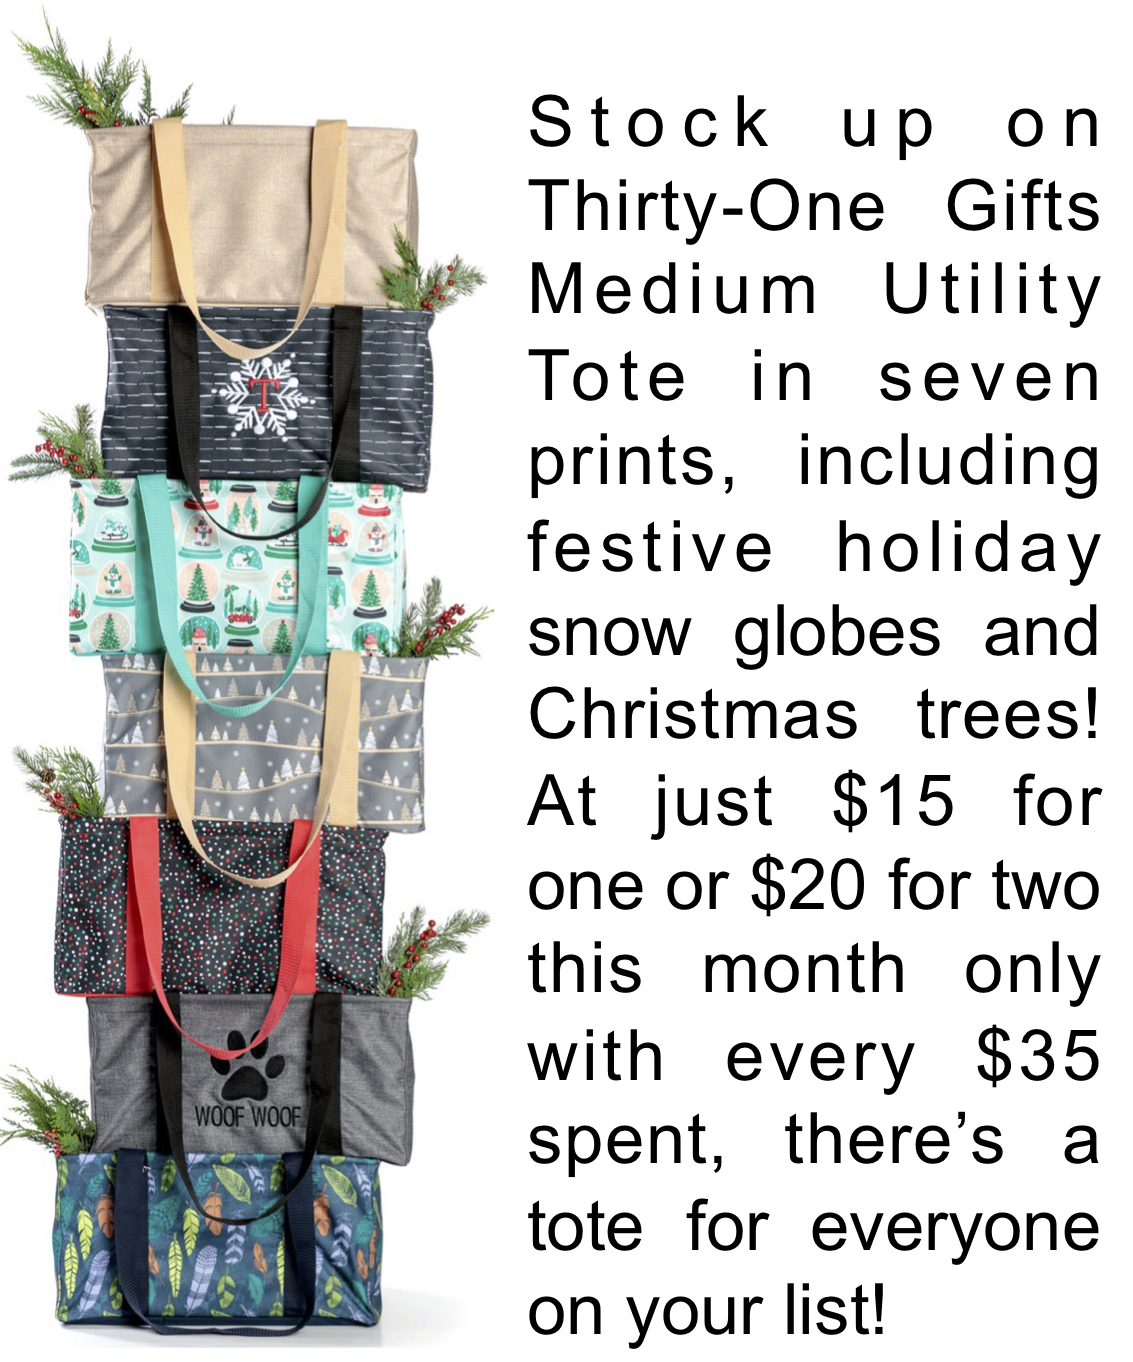 Thirty-One Gifts Medium Utility Tote